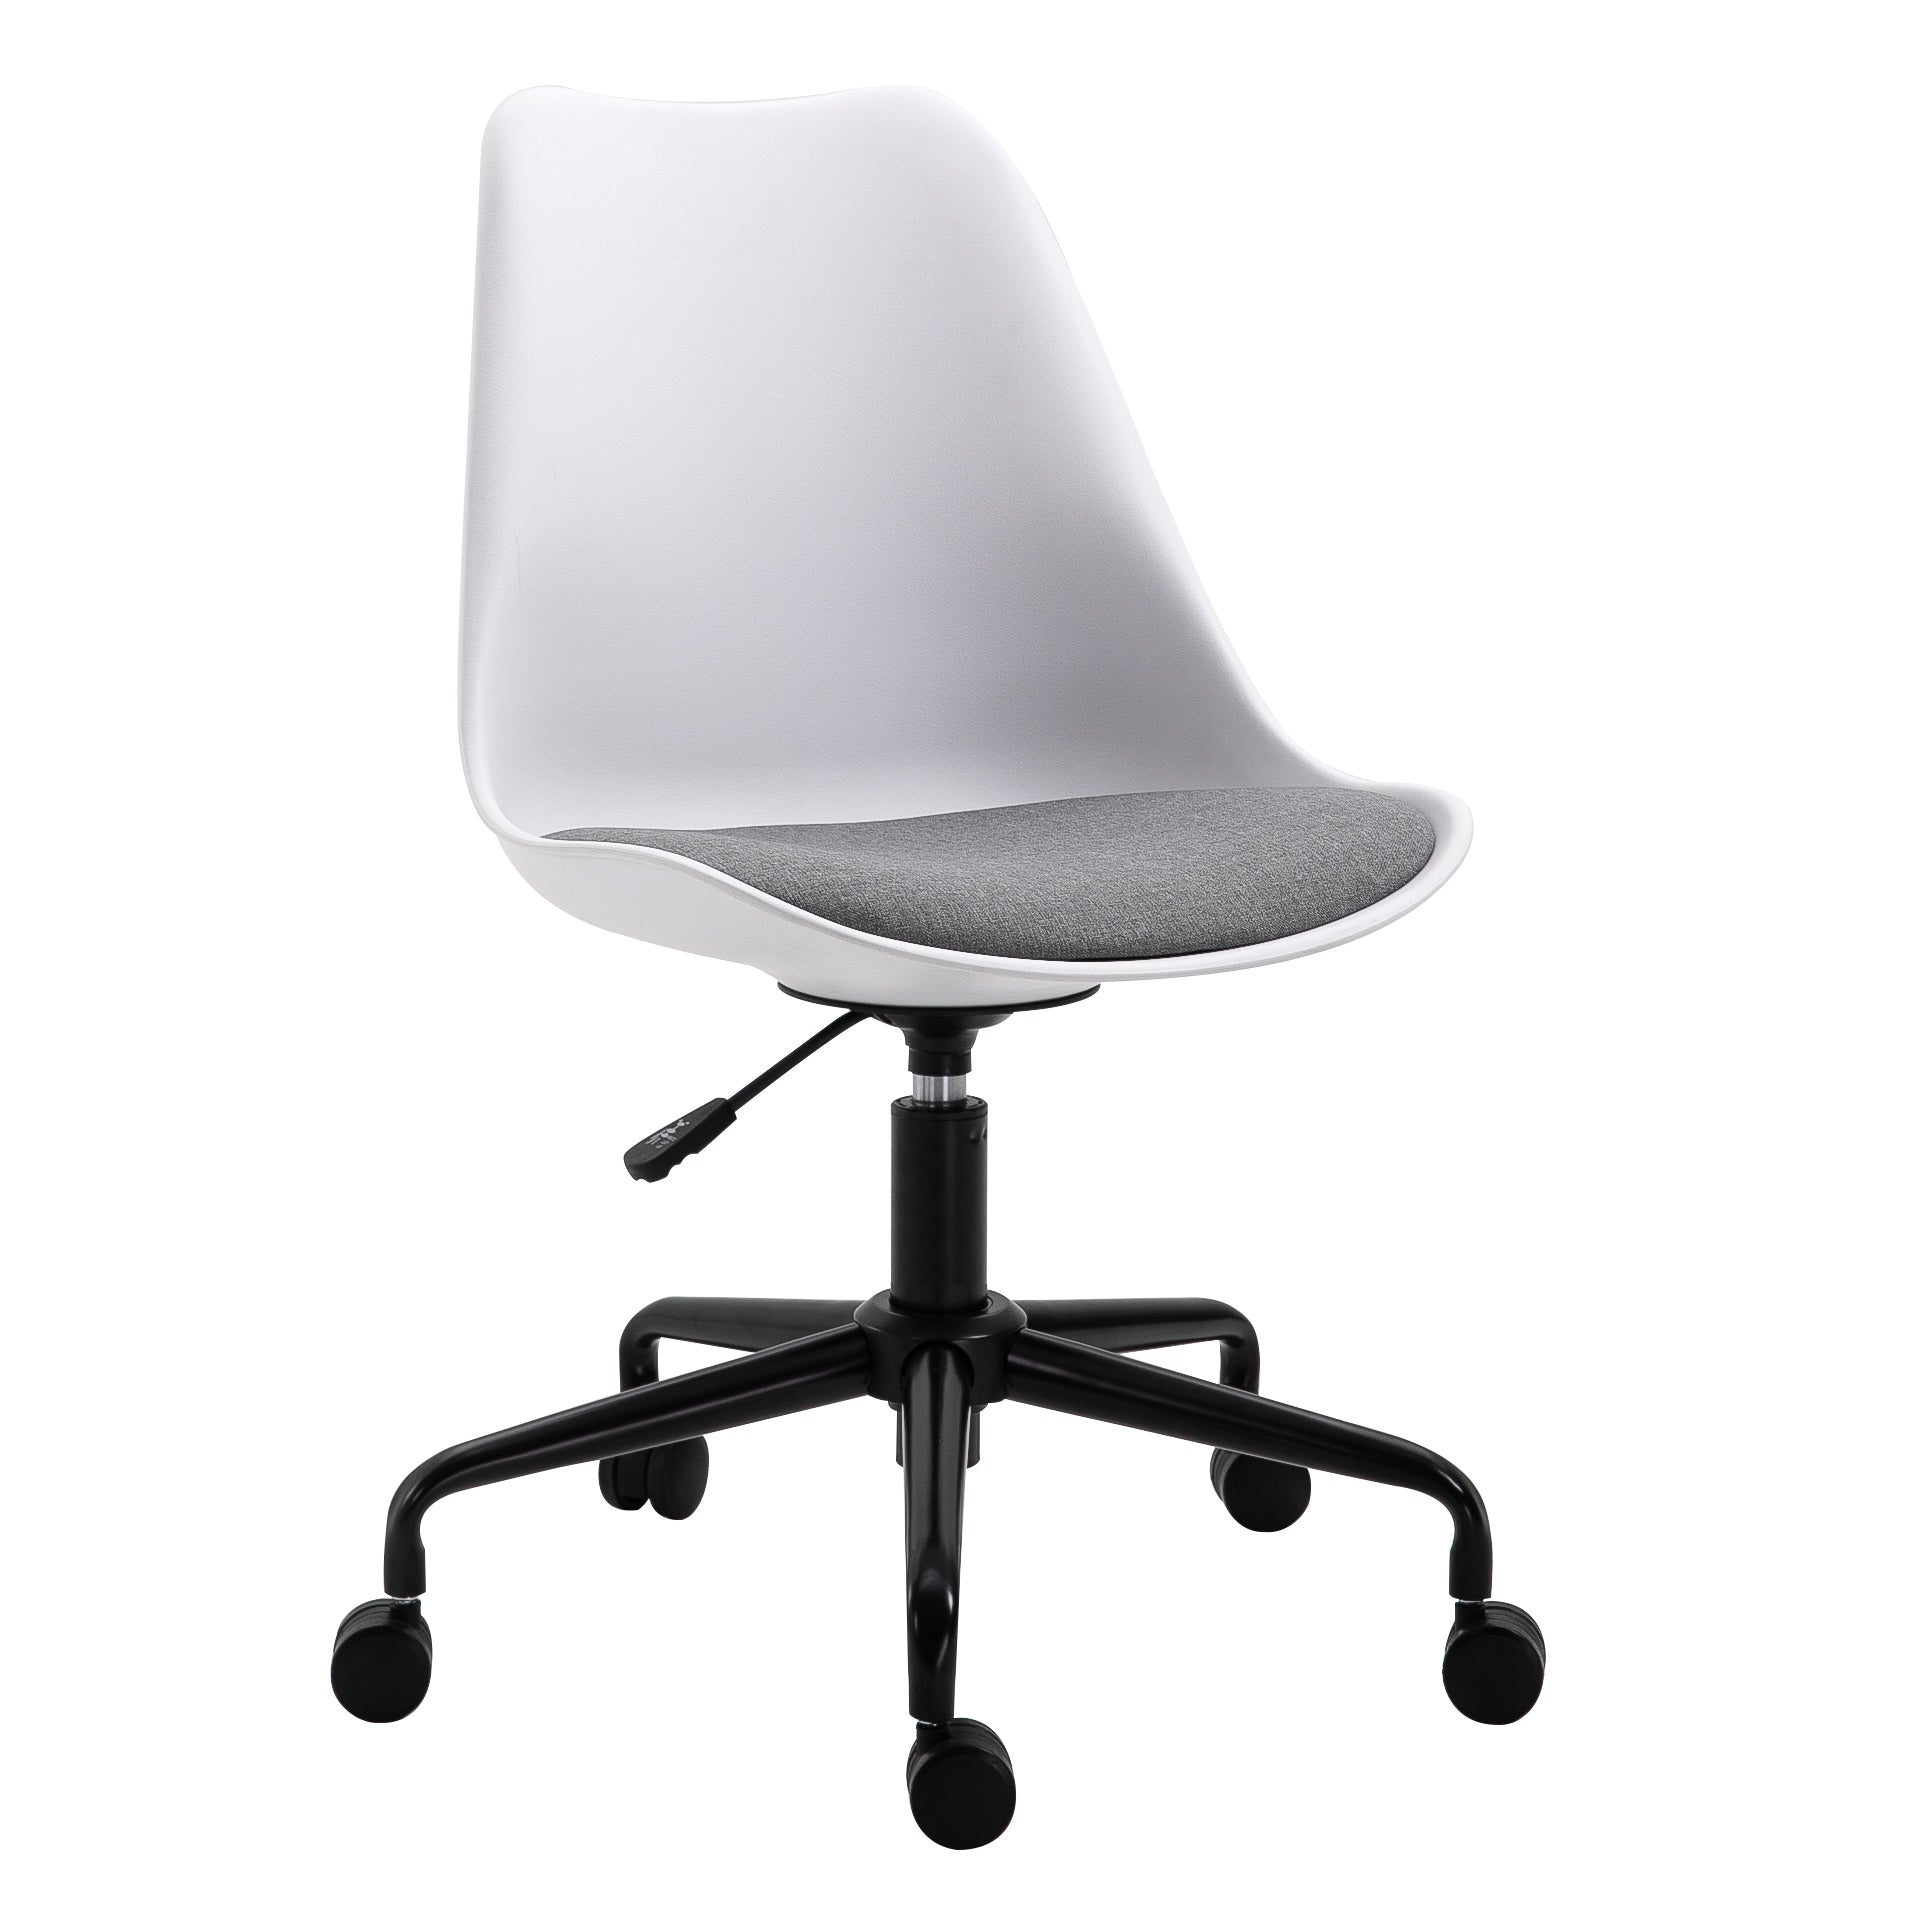 Gerri Swivel Office Chair with Upholstered Seat White